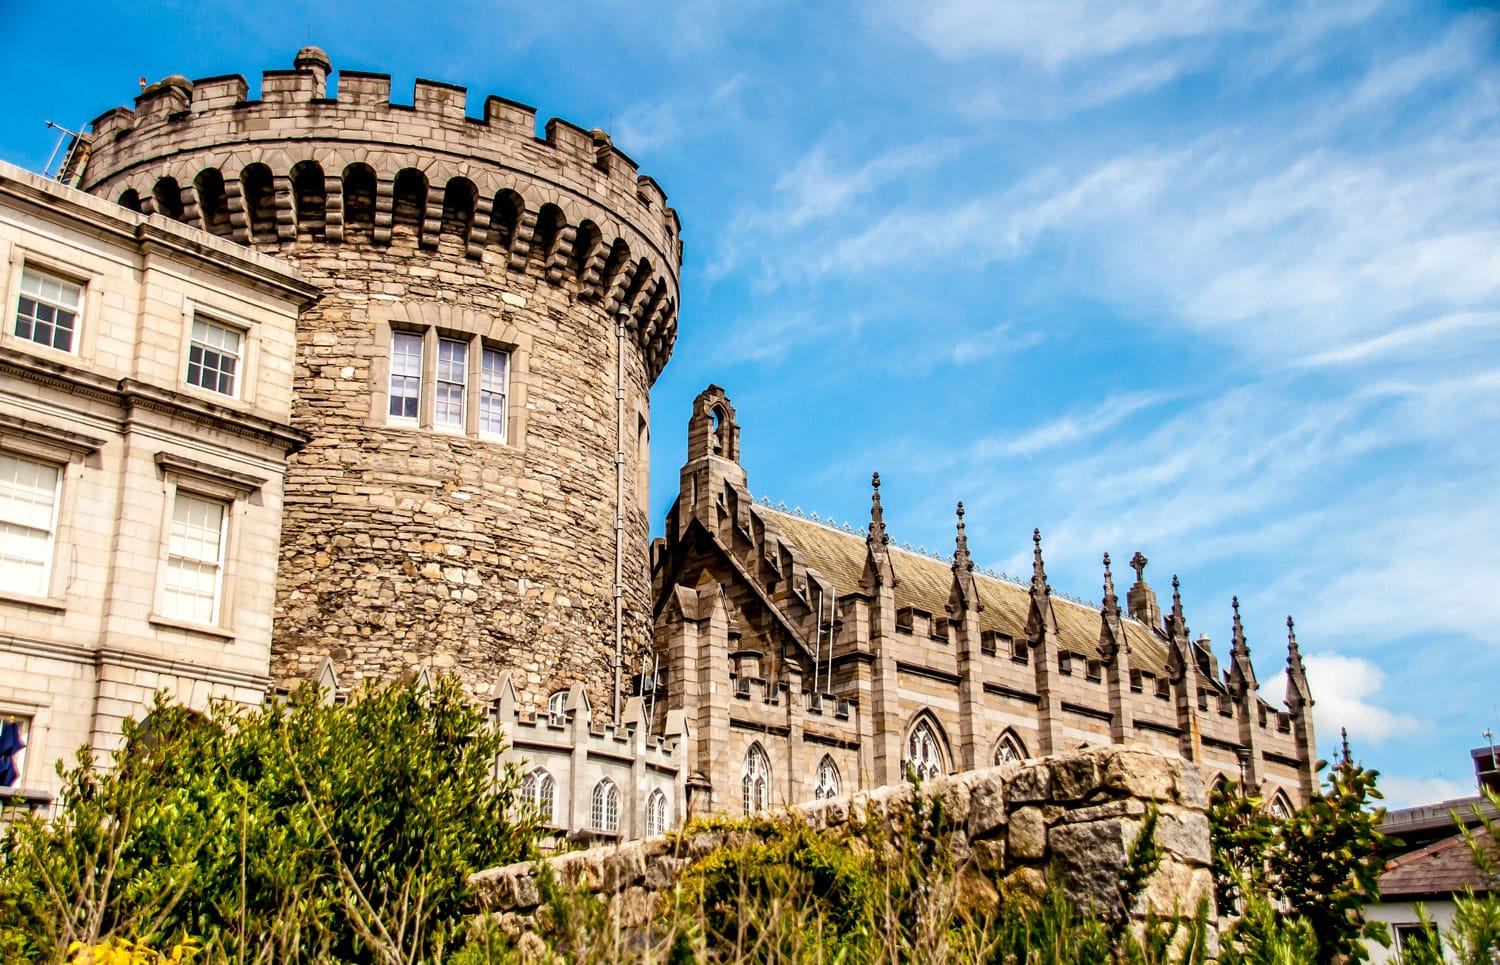 Panoramic view of a strong tower of the Dublin castle, in Dublin, Ireland